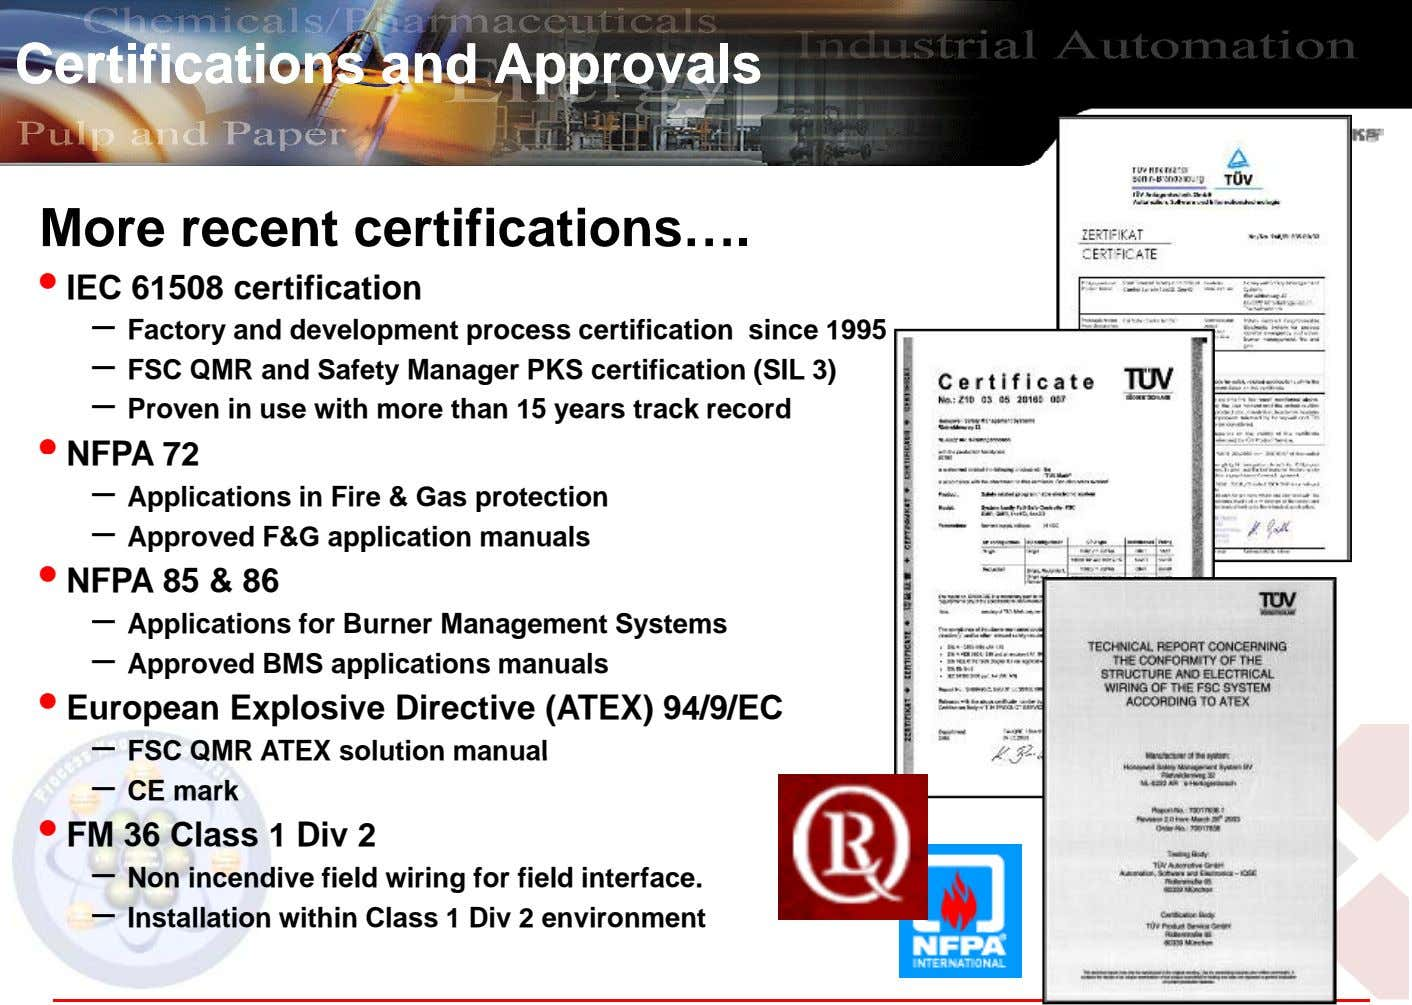 CertificationsCertifications andand ApprovalsApprovals More recent certifications…. • IEC 61508 certification –